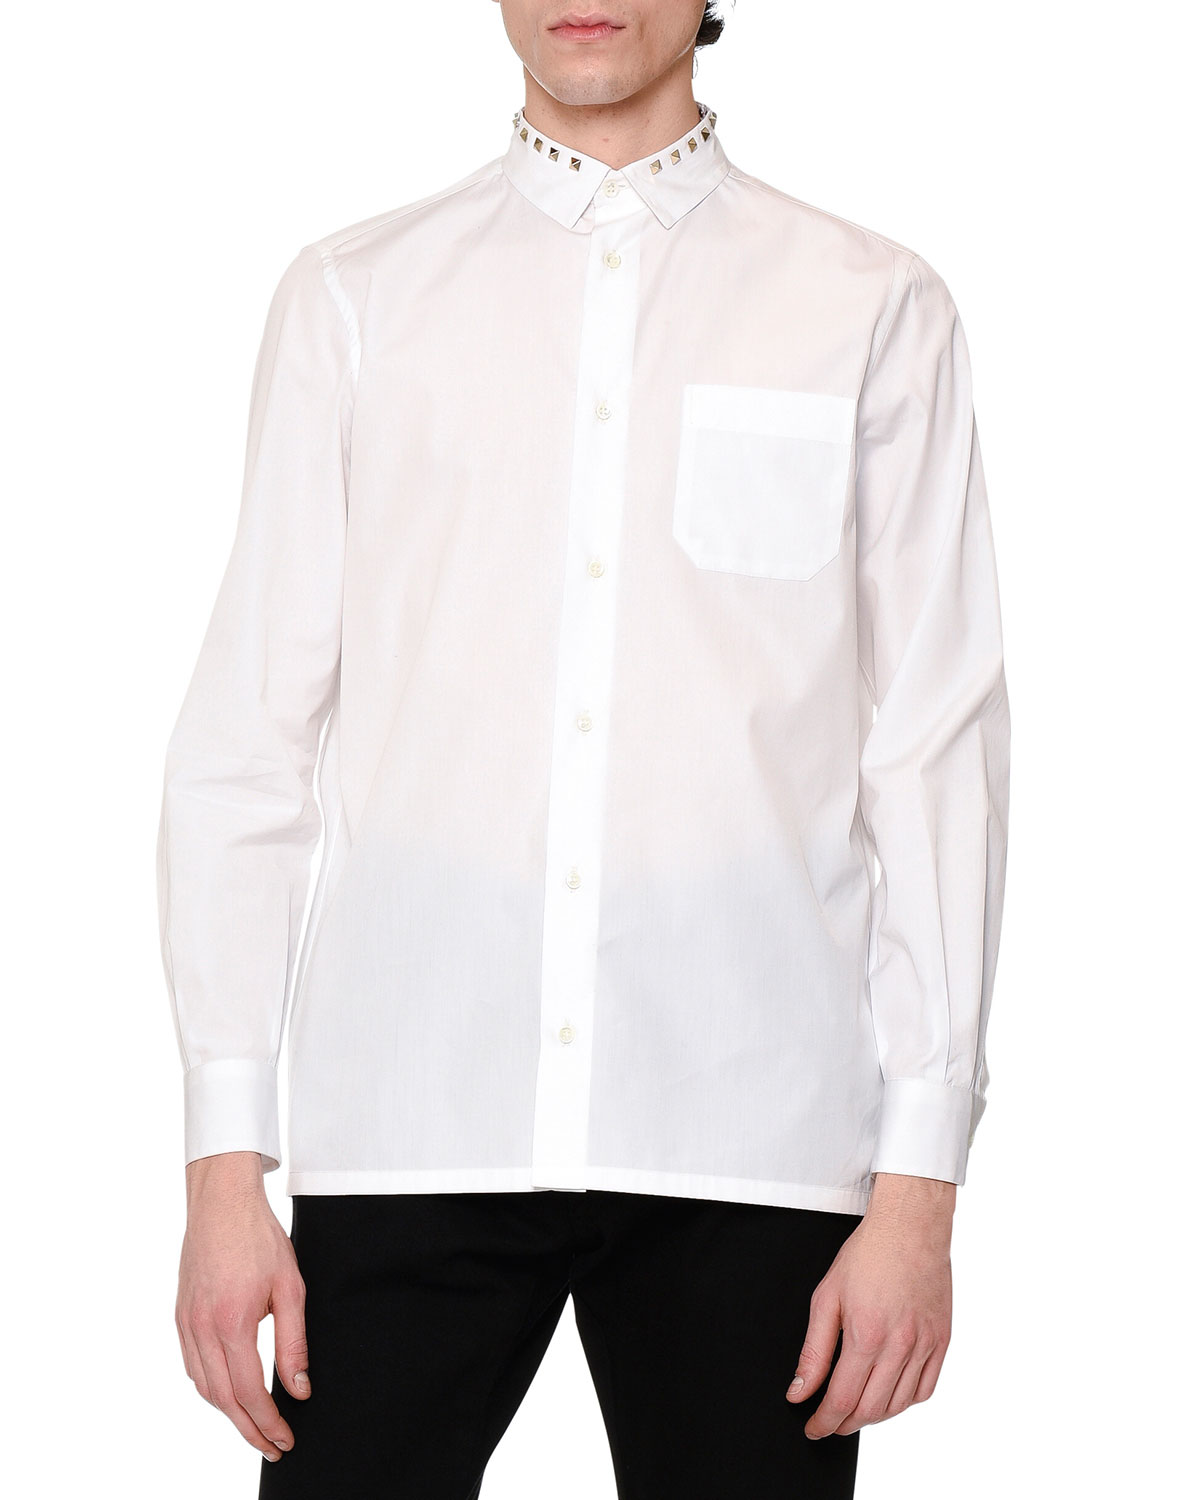 Rockstud-Collar Long-Sleeve Sport Shirt, White